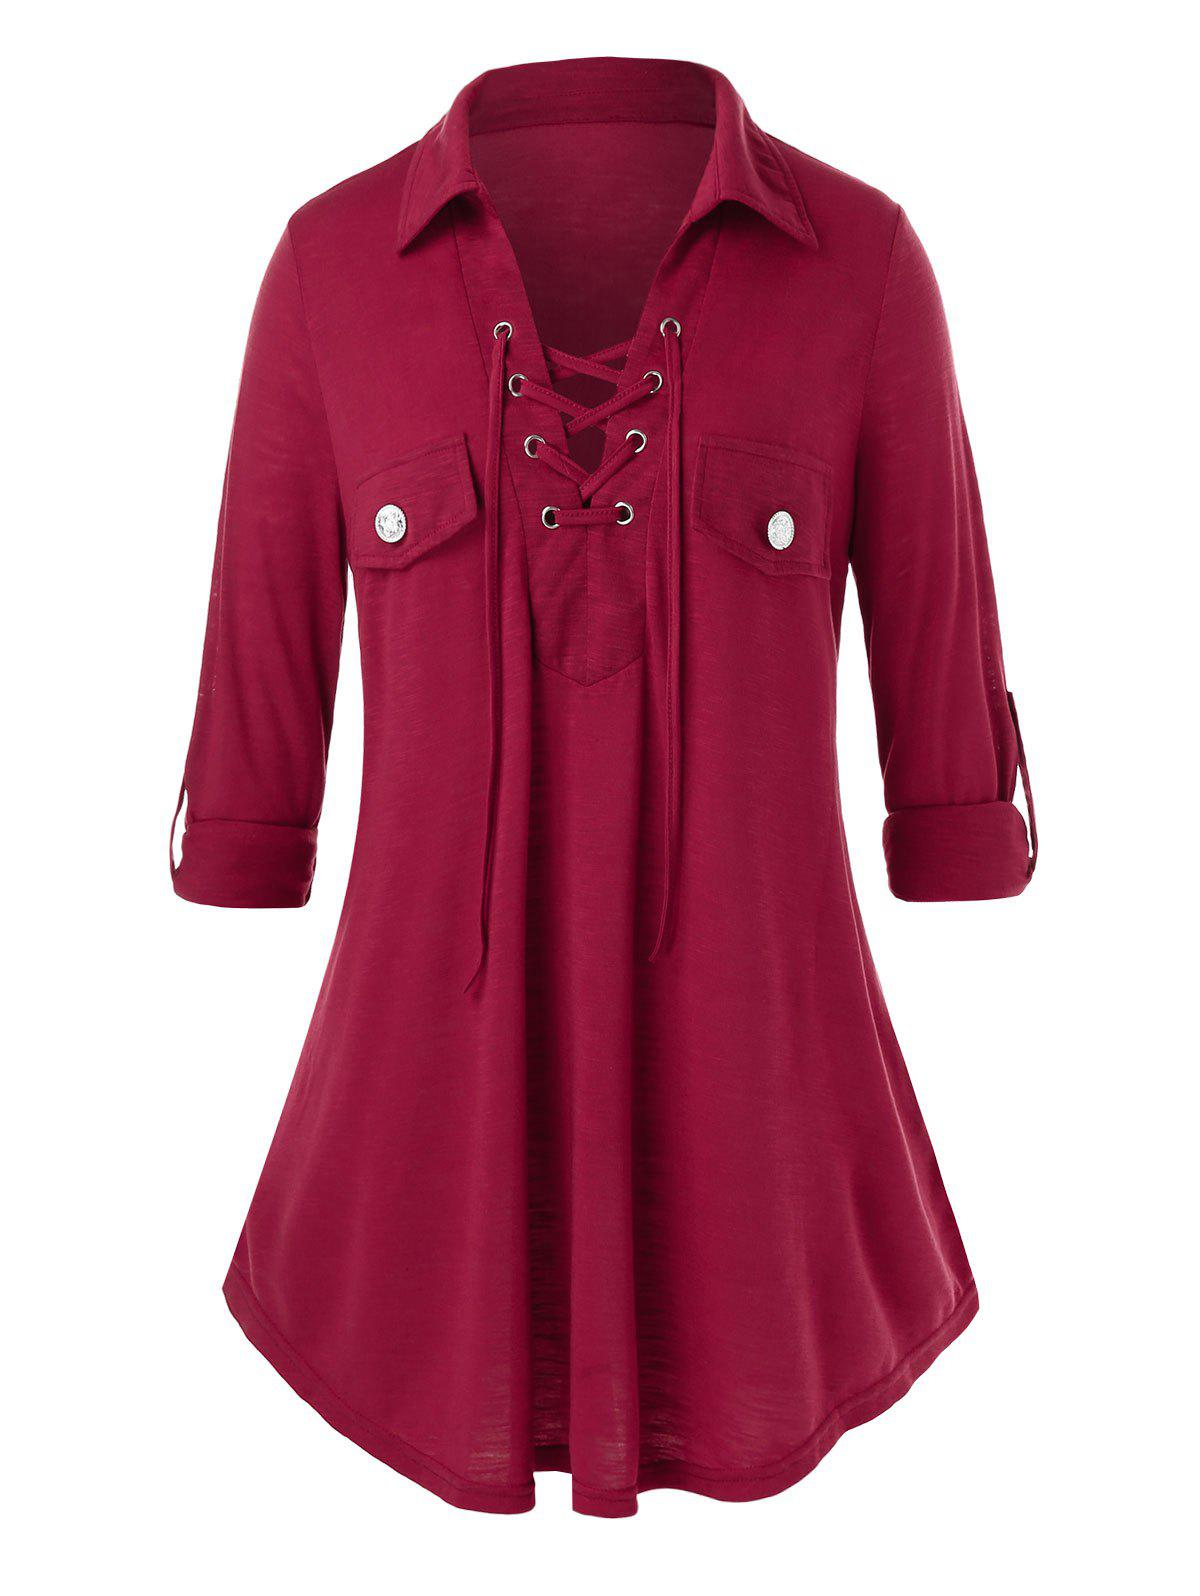 Plus Size Lace Up Roll Up Sleeve Tunic Top - RED WINE 5X